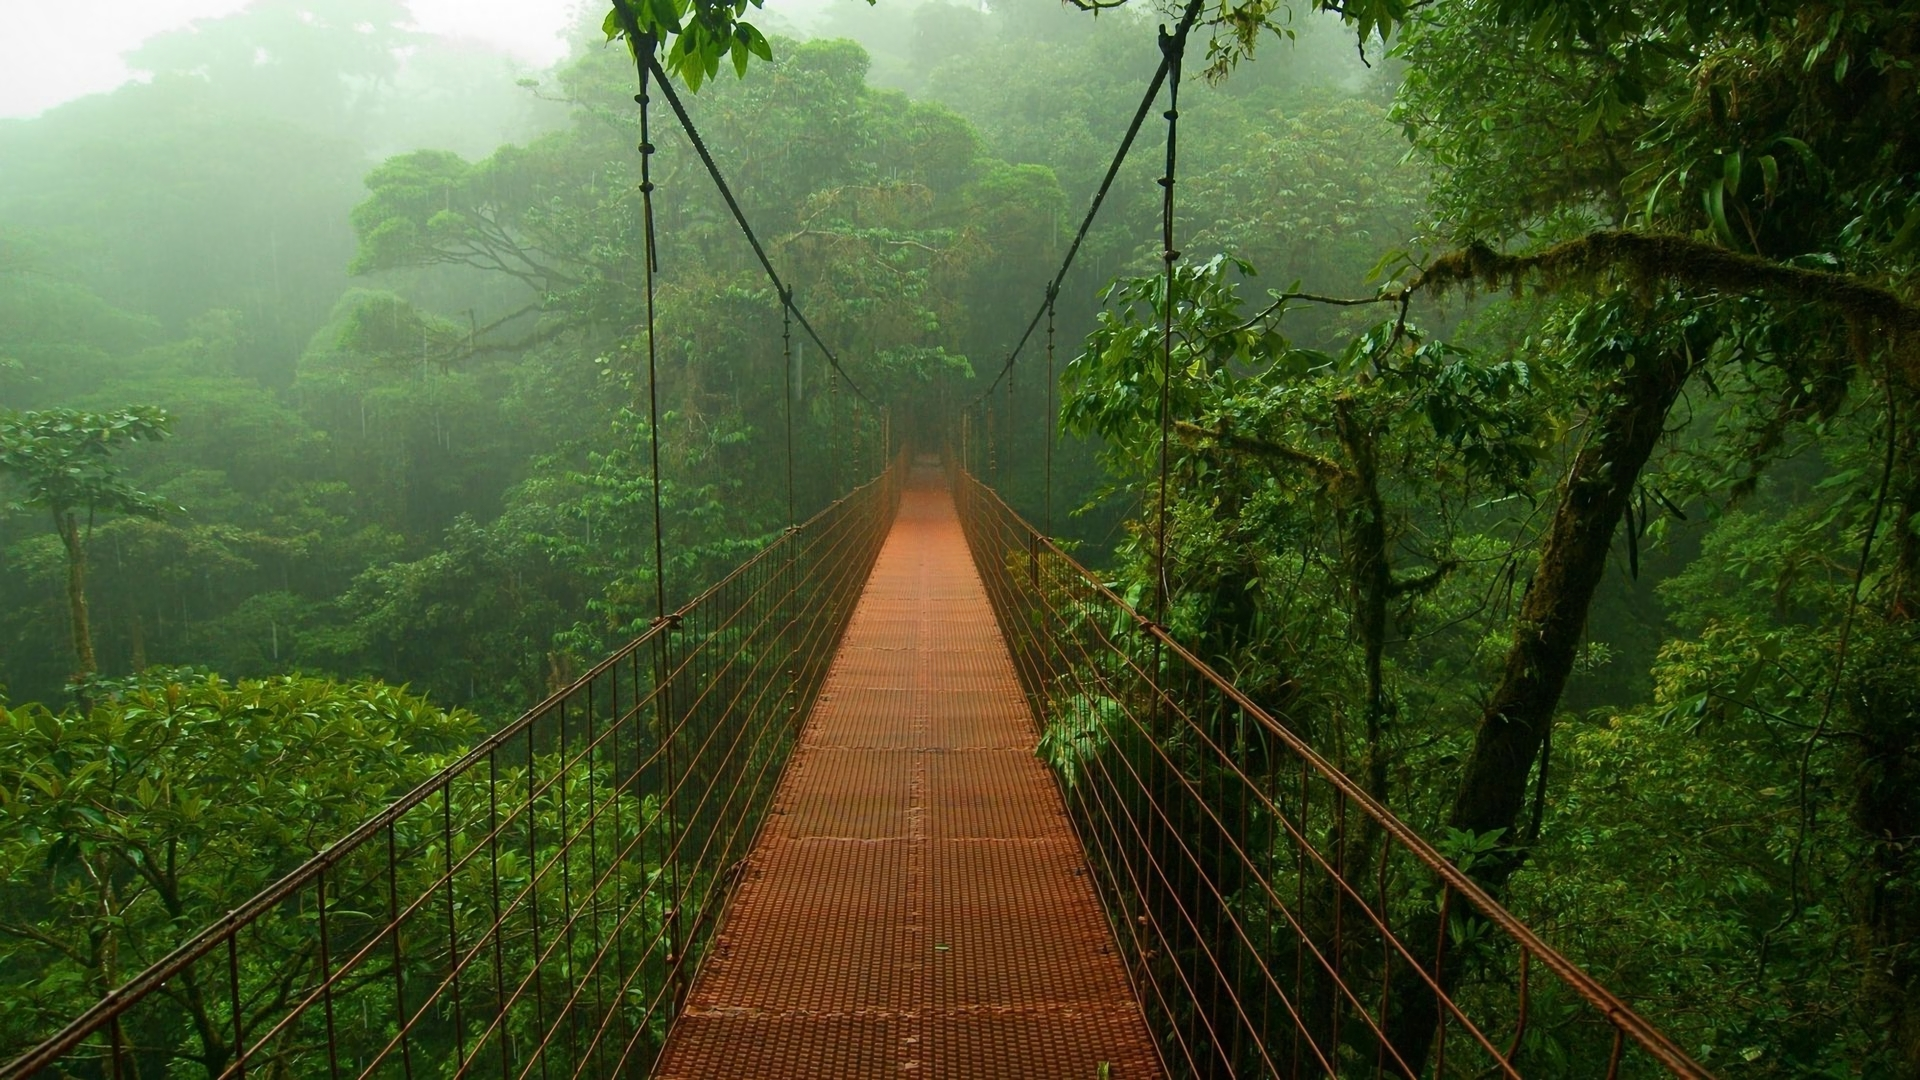 32 rainforest hd wallpapers   background images - wallpaper abyss